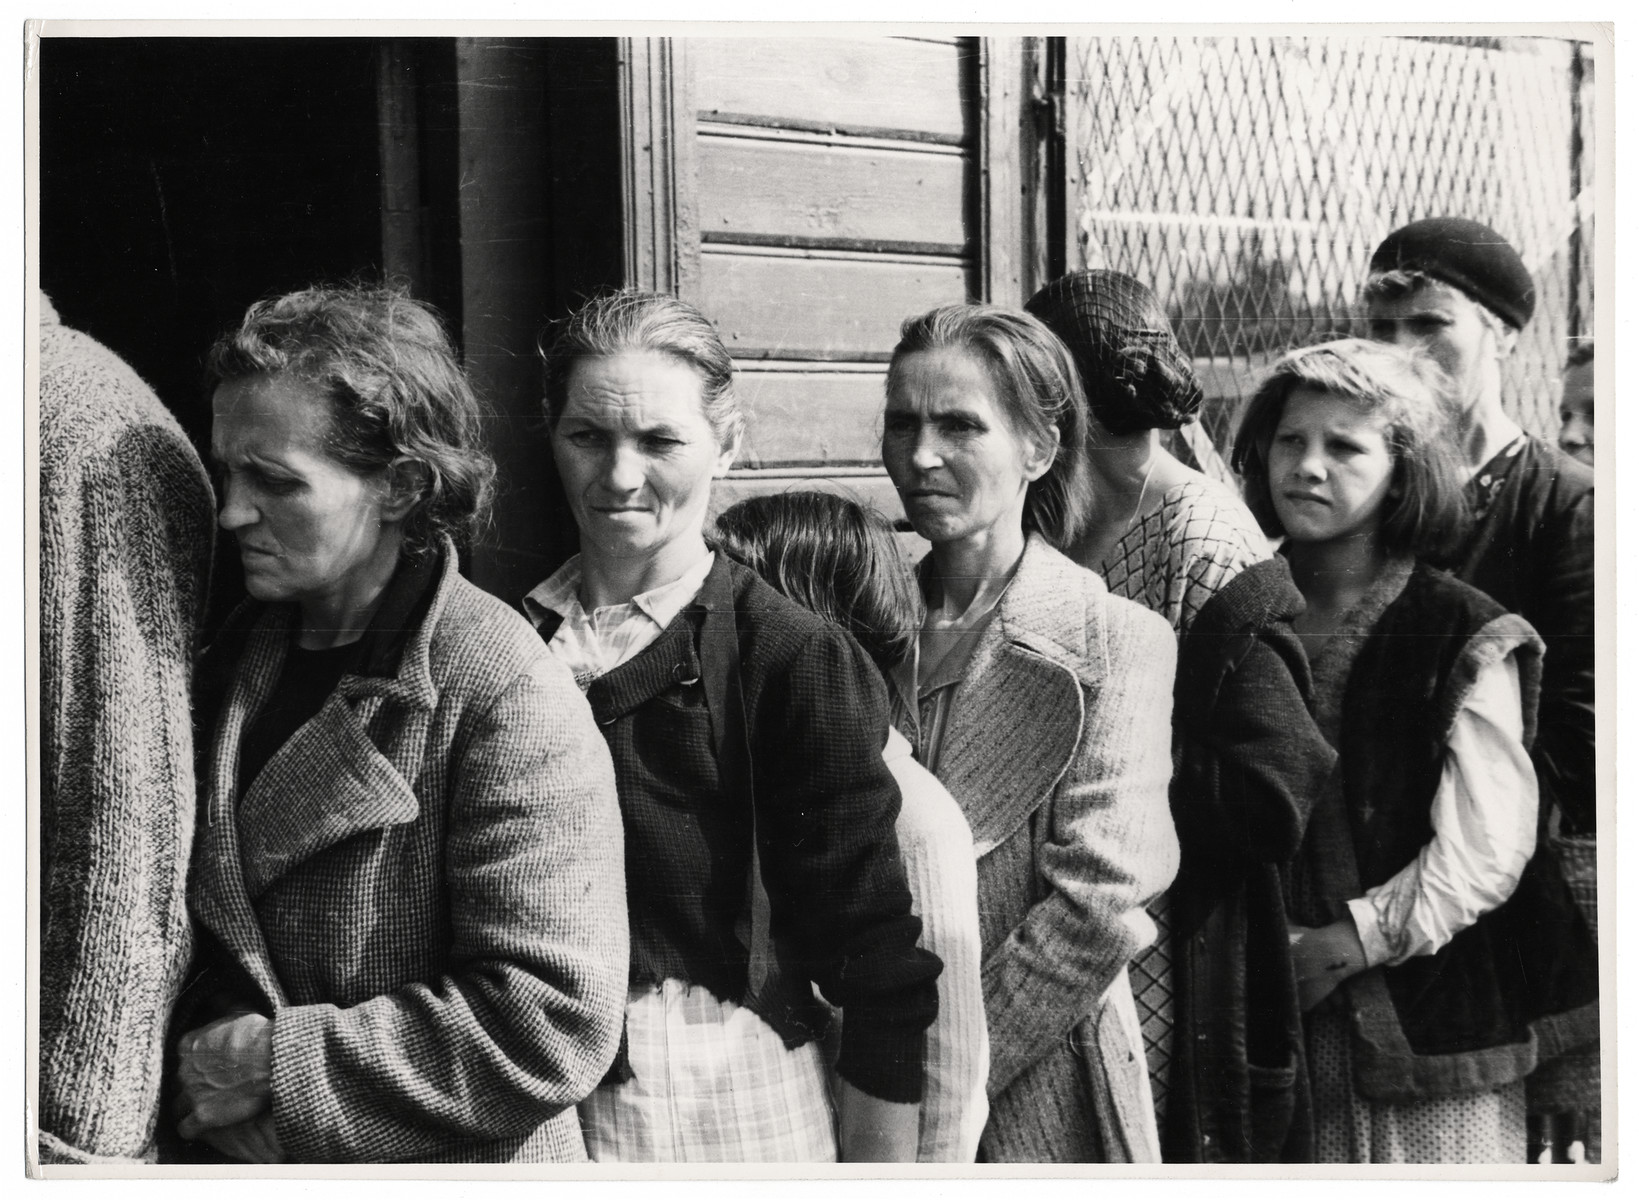 Polish women line up for bread distribution in besieged Warsaw.